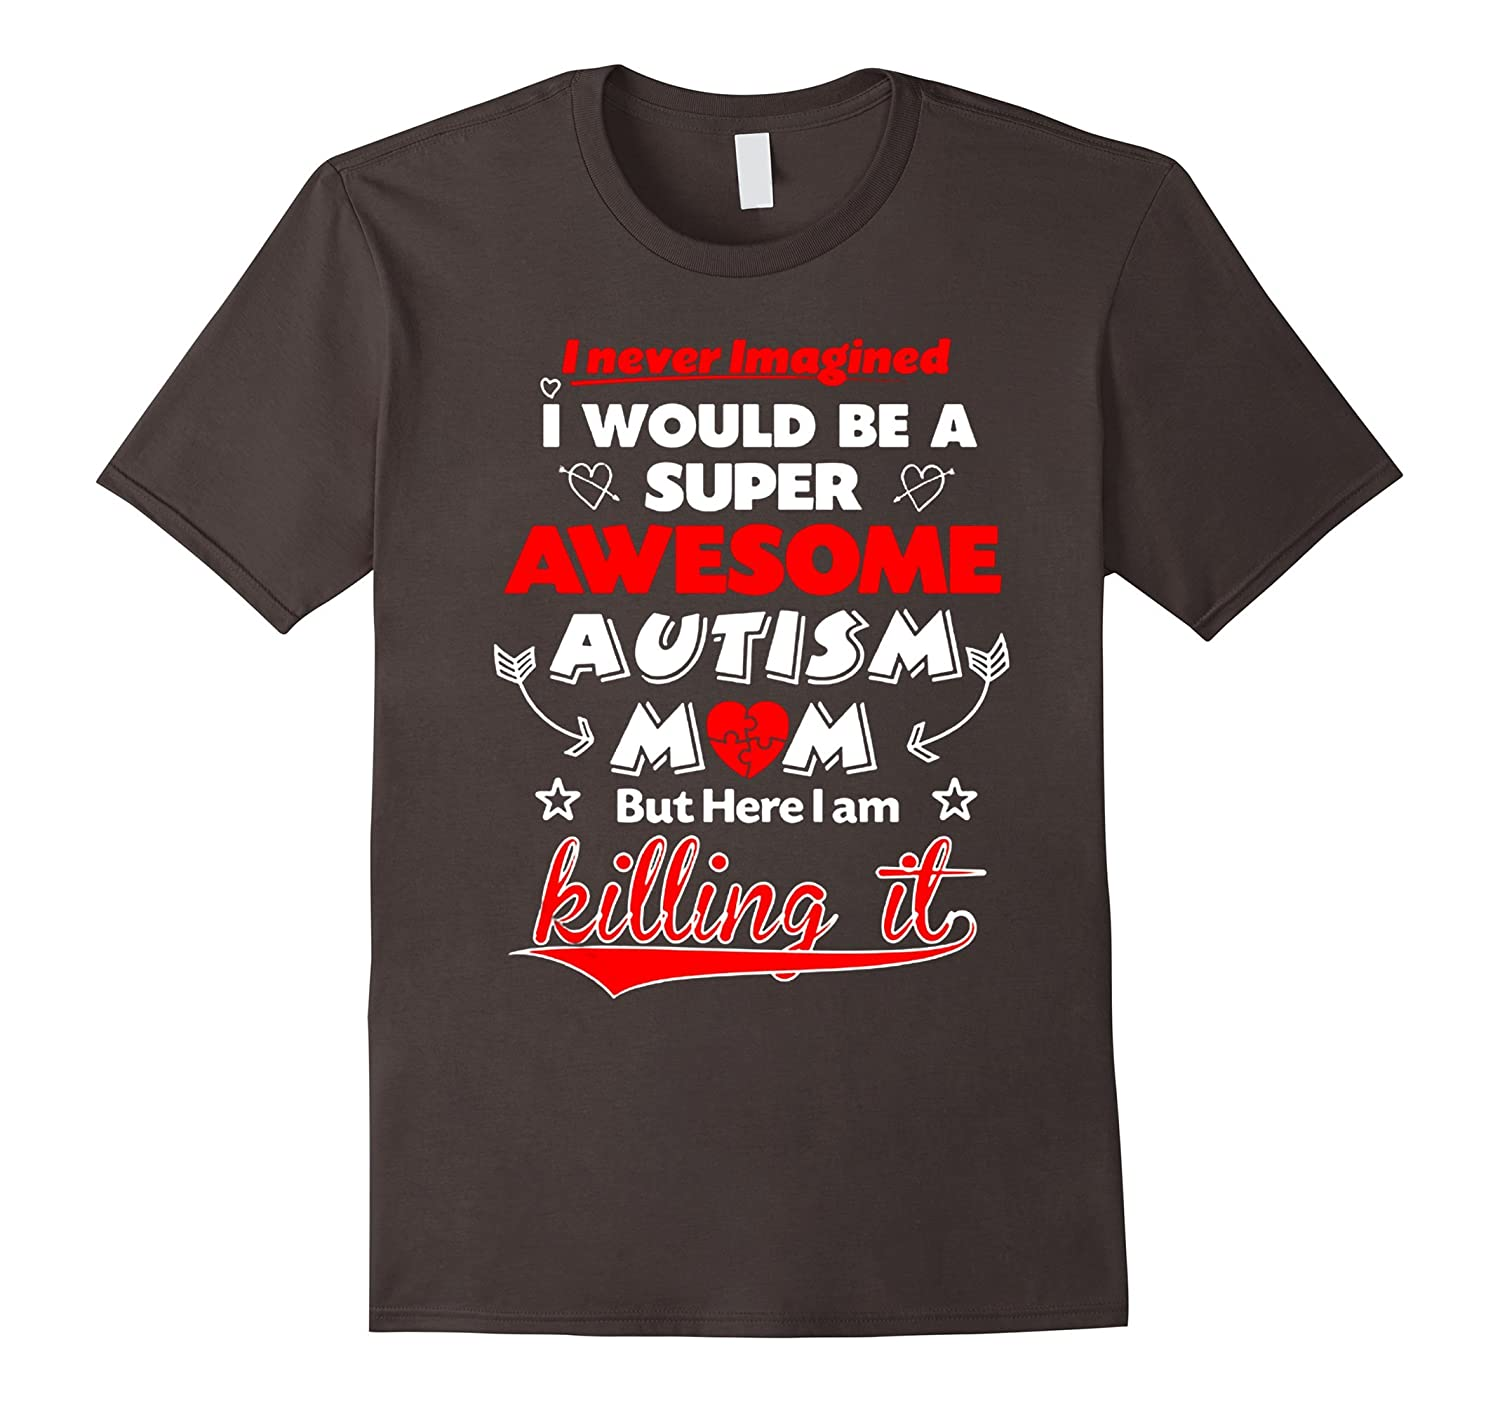 Imagined would be a super awesome autism autistic mom tshirt-TH